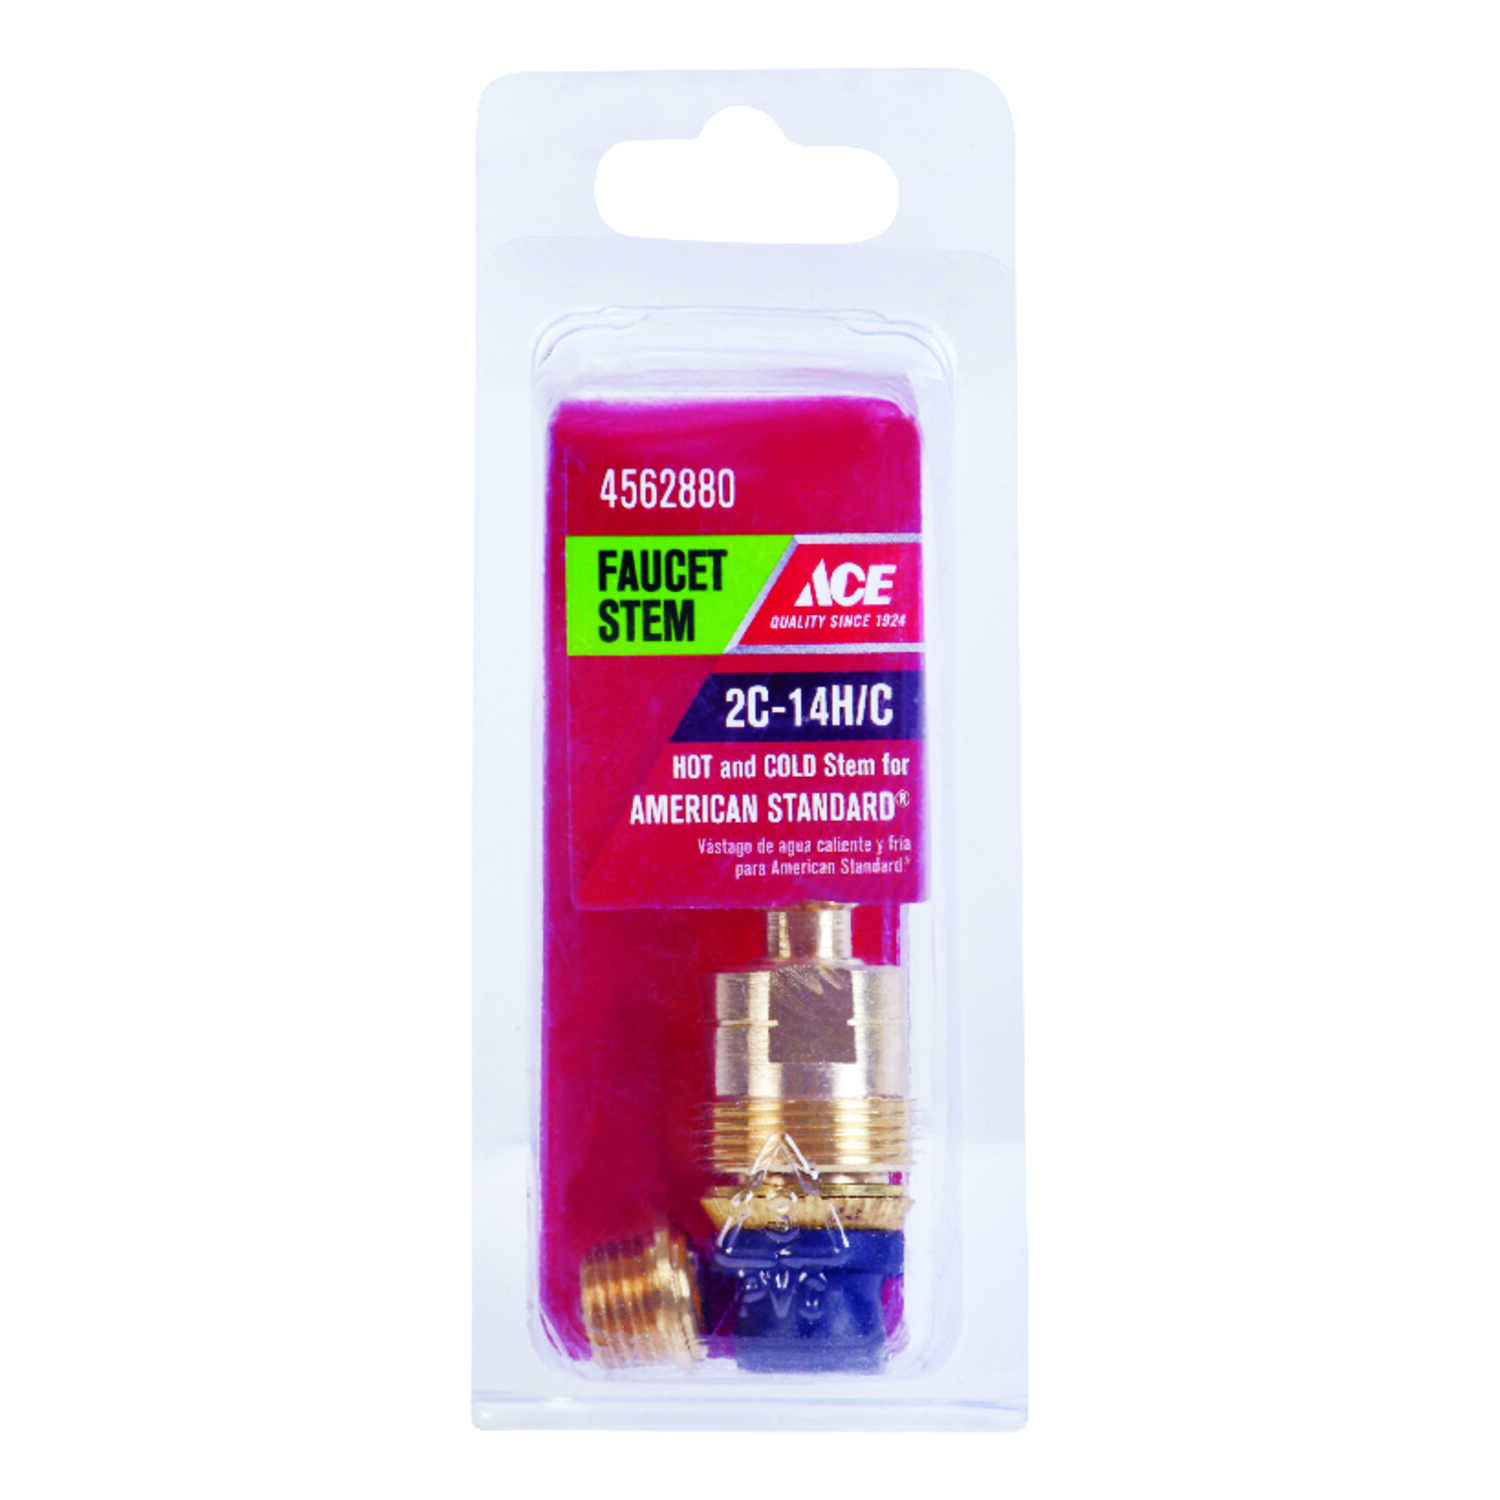 Ace  Hot and Cold  2C-14H/C  Faucet Stem  For American Standard